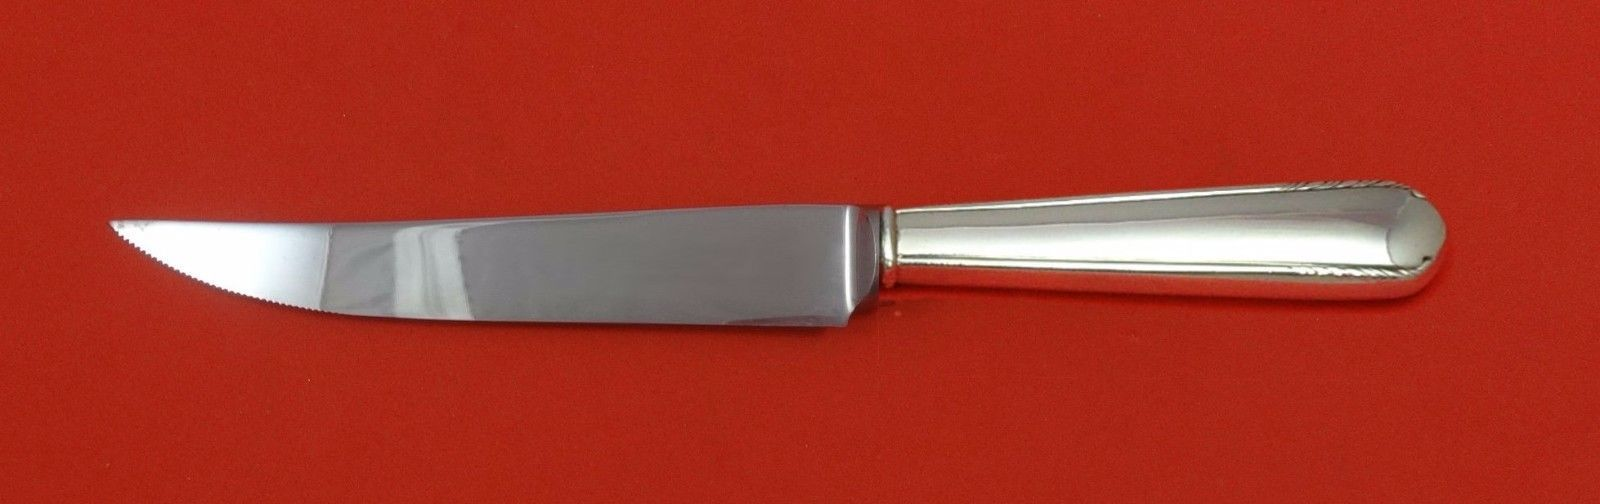 "Silver Stream by Manchester Sterling Silver Steak Knife Serrated Custom 8 1/2"" - $75.05"